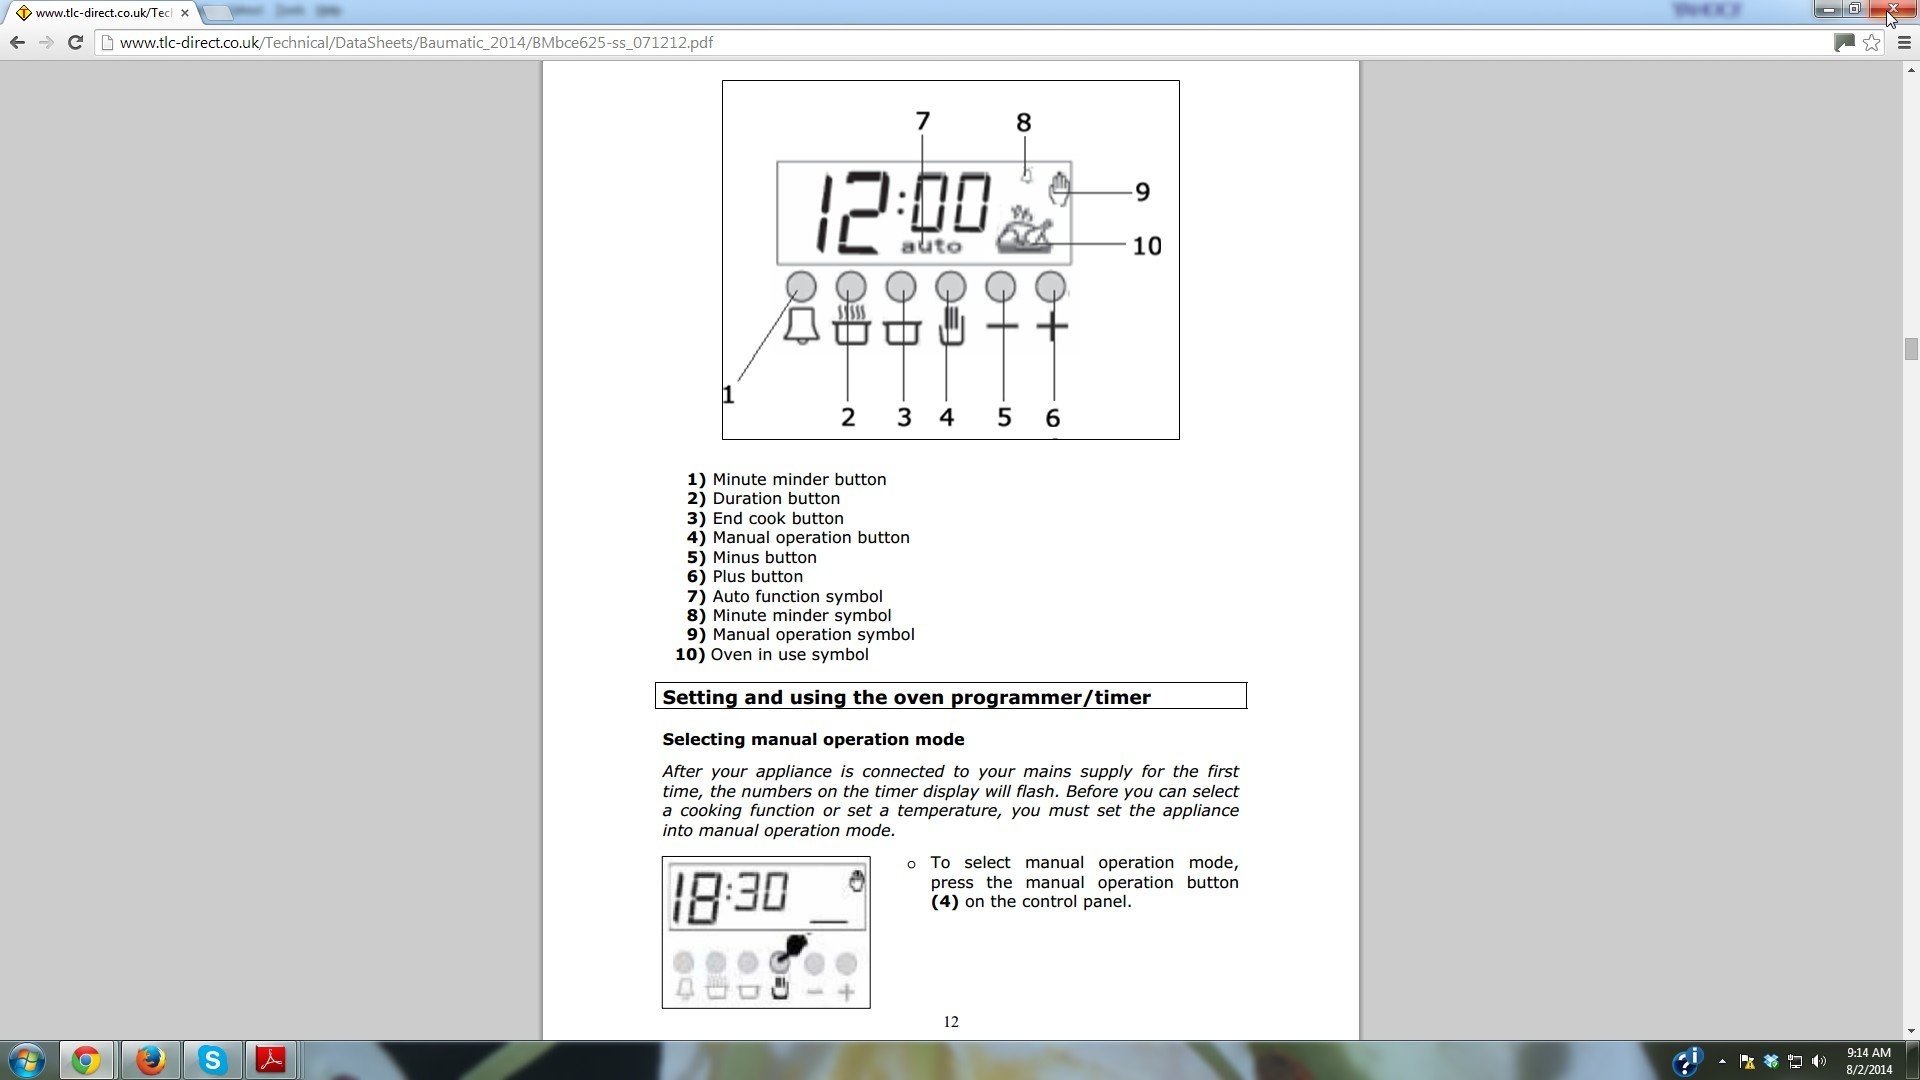 Electric cooker symbols gallery symbol and sign ideas how can take the oven out of auto and set the time on a baumatic graphic biocorpaavc